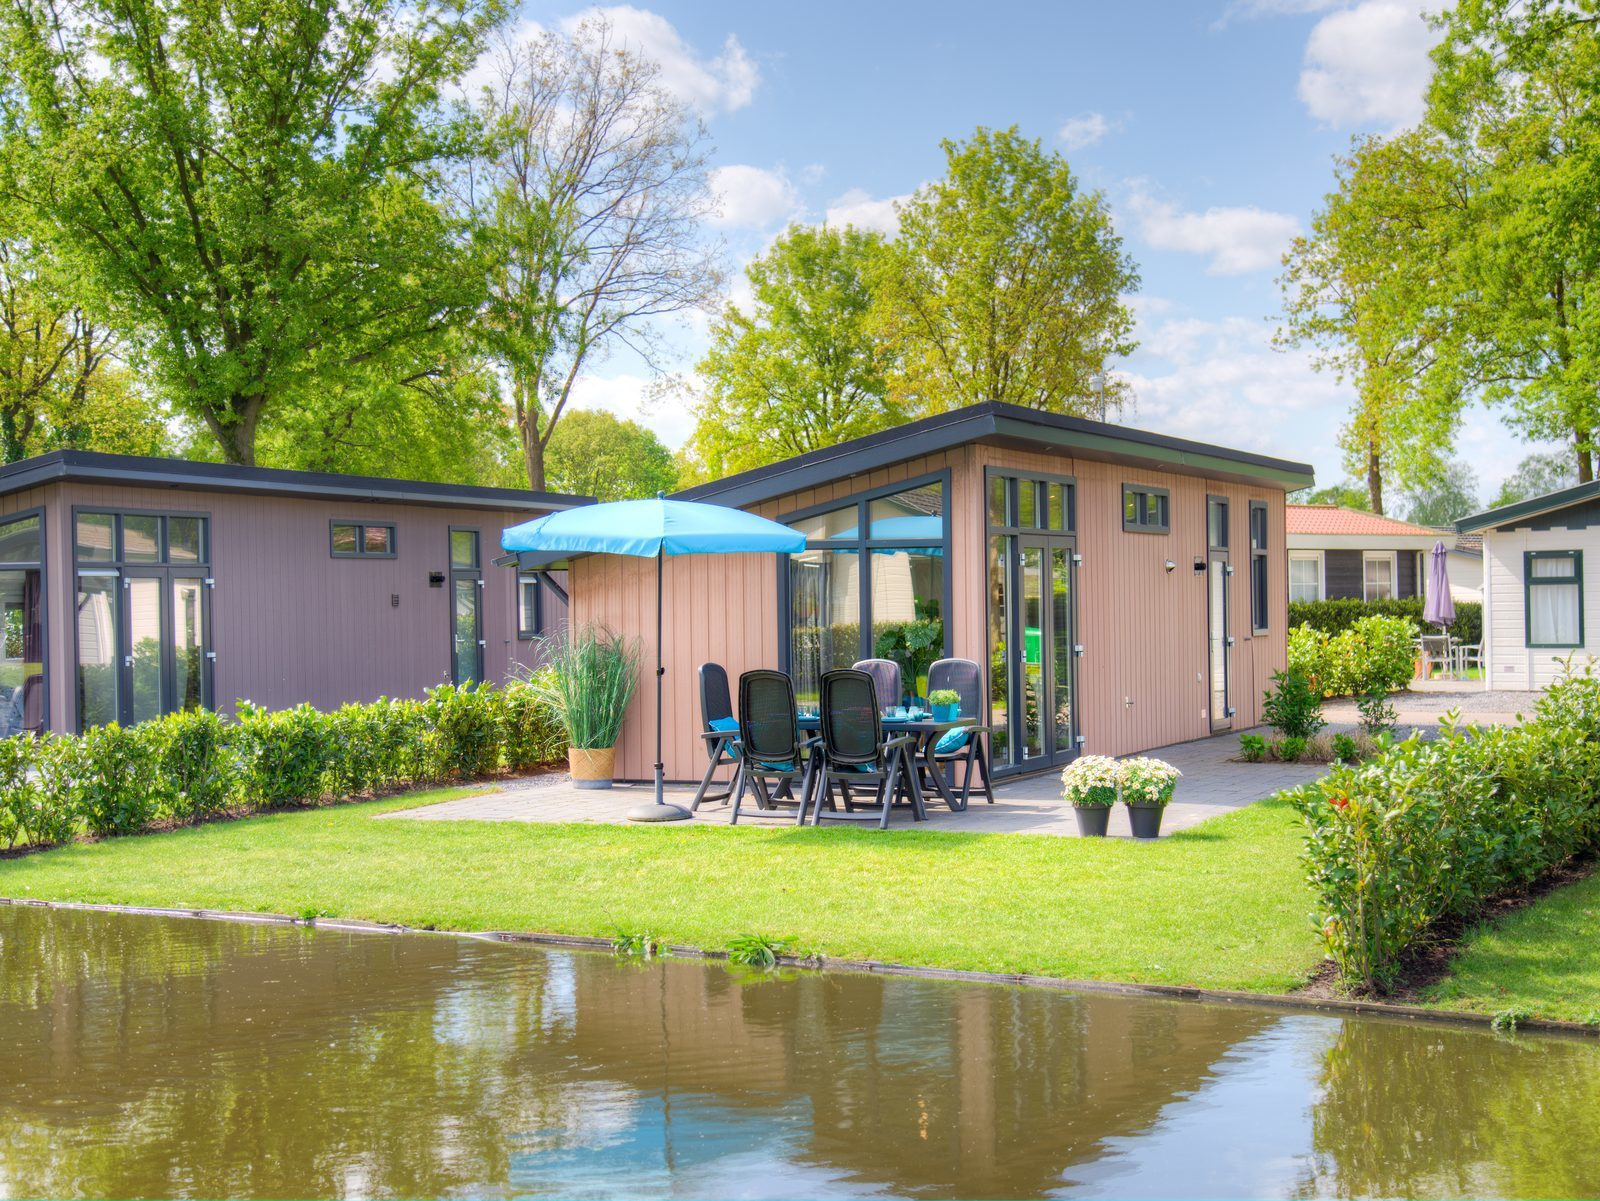 Buy a holiday home in Cromvoirt (North Brabant)